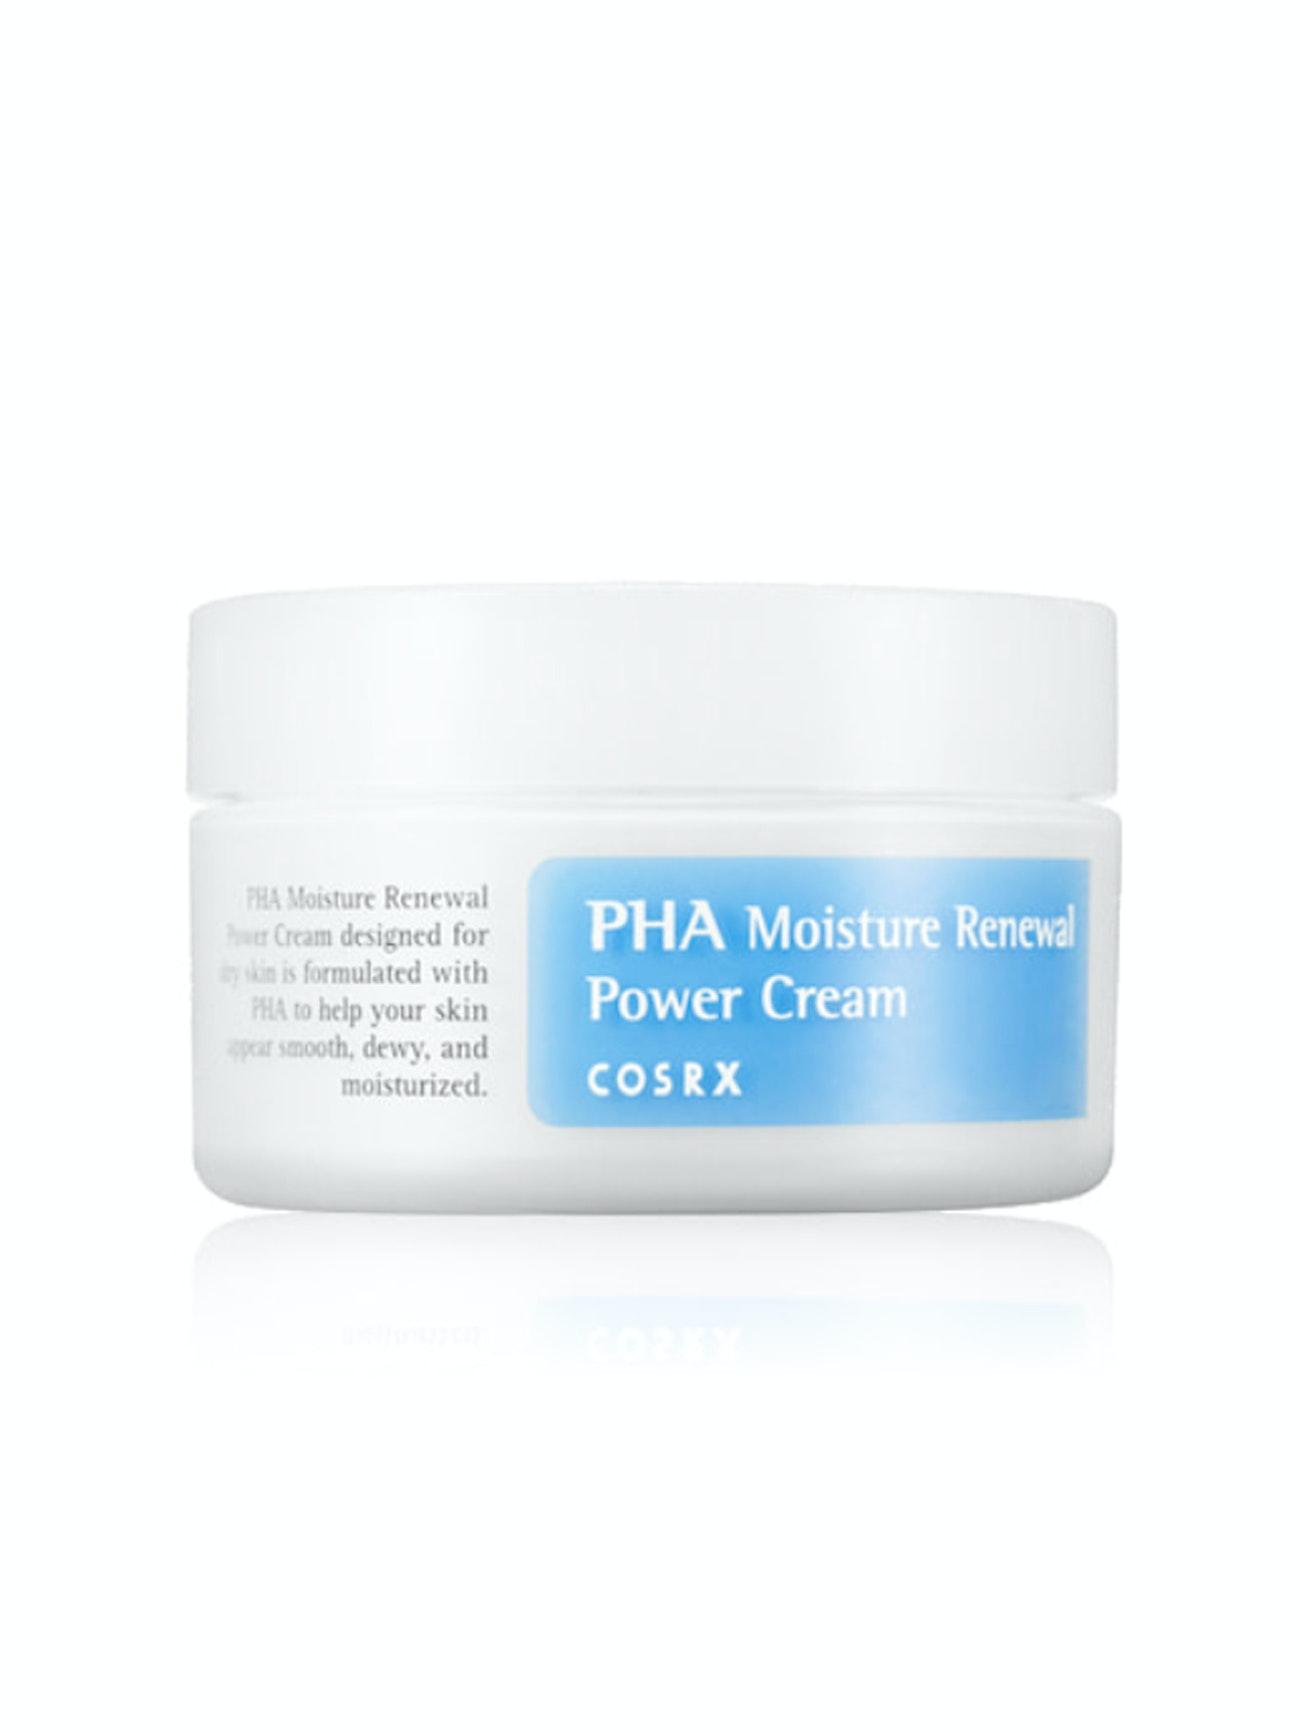 COSRX PHA Moisture Renewal Power Cream